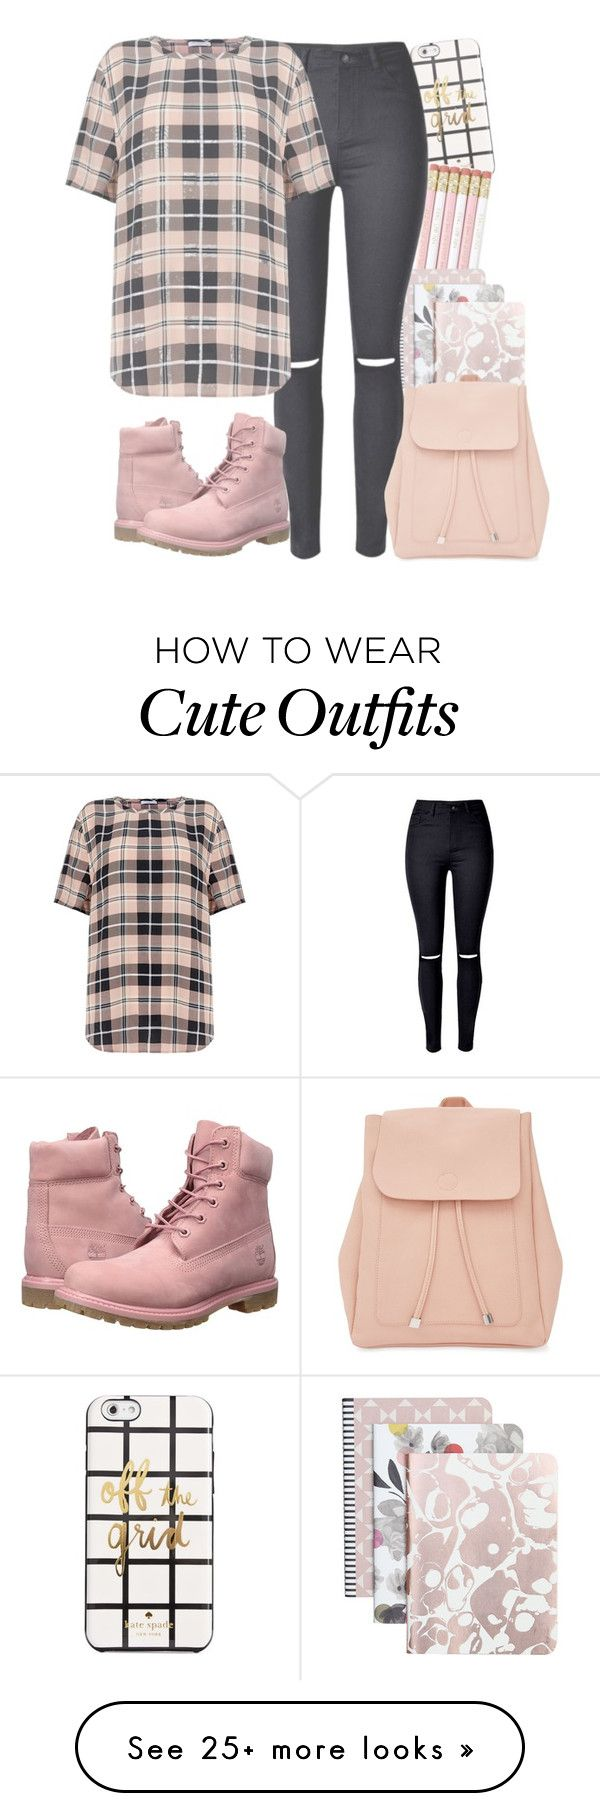 """""""Pink (3)"""" by forever-lover1 on Polyvore featuring Kate Spade, Caroline Gardner, Timberland, Equipment and New Look"""